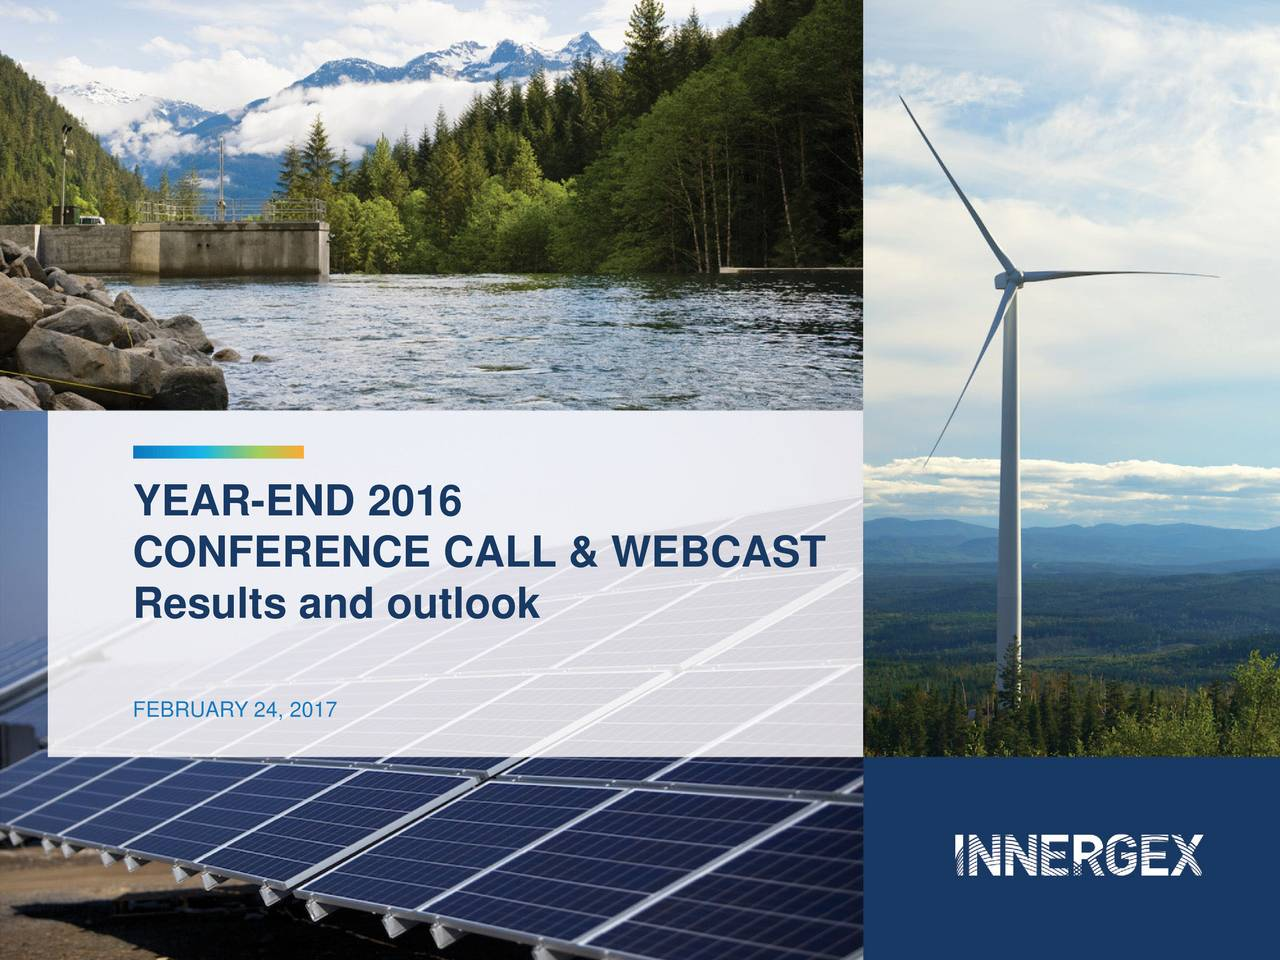 CONFERENCE CALL & WEBCAST Results and outlook FEBRUARY 24, 2017